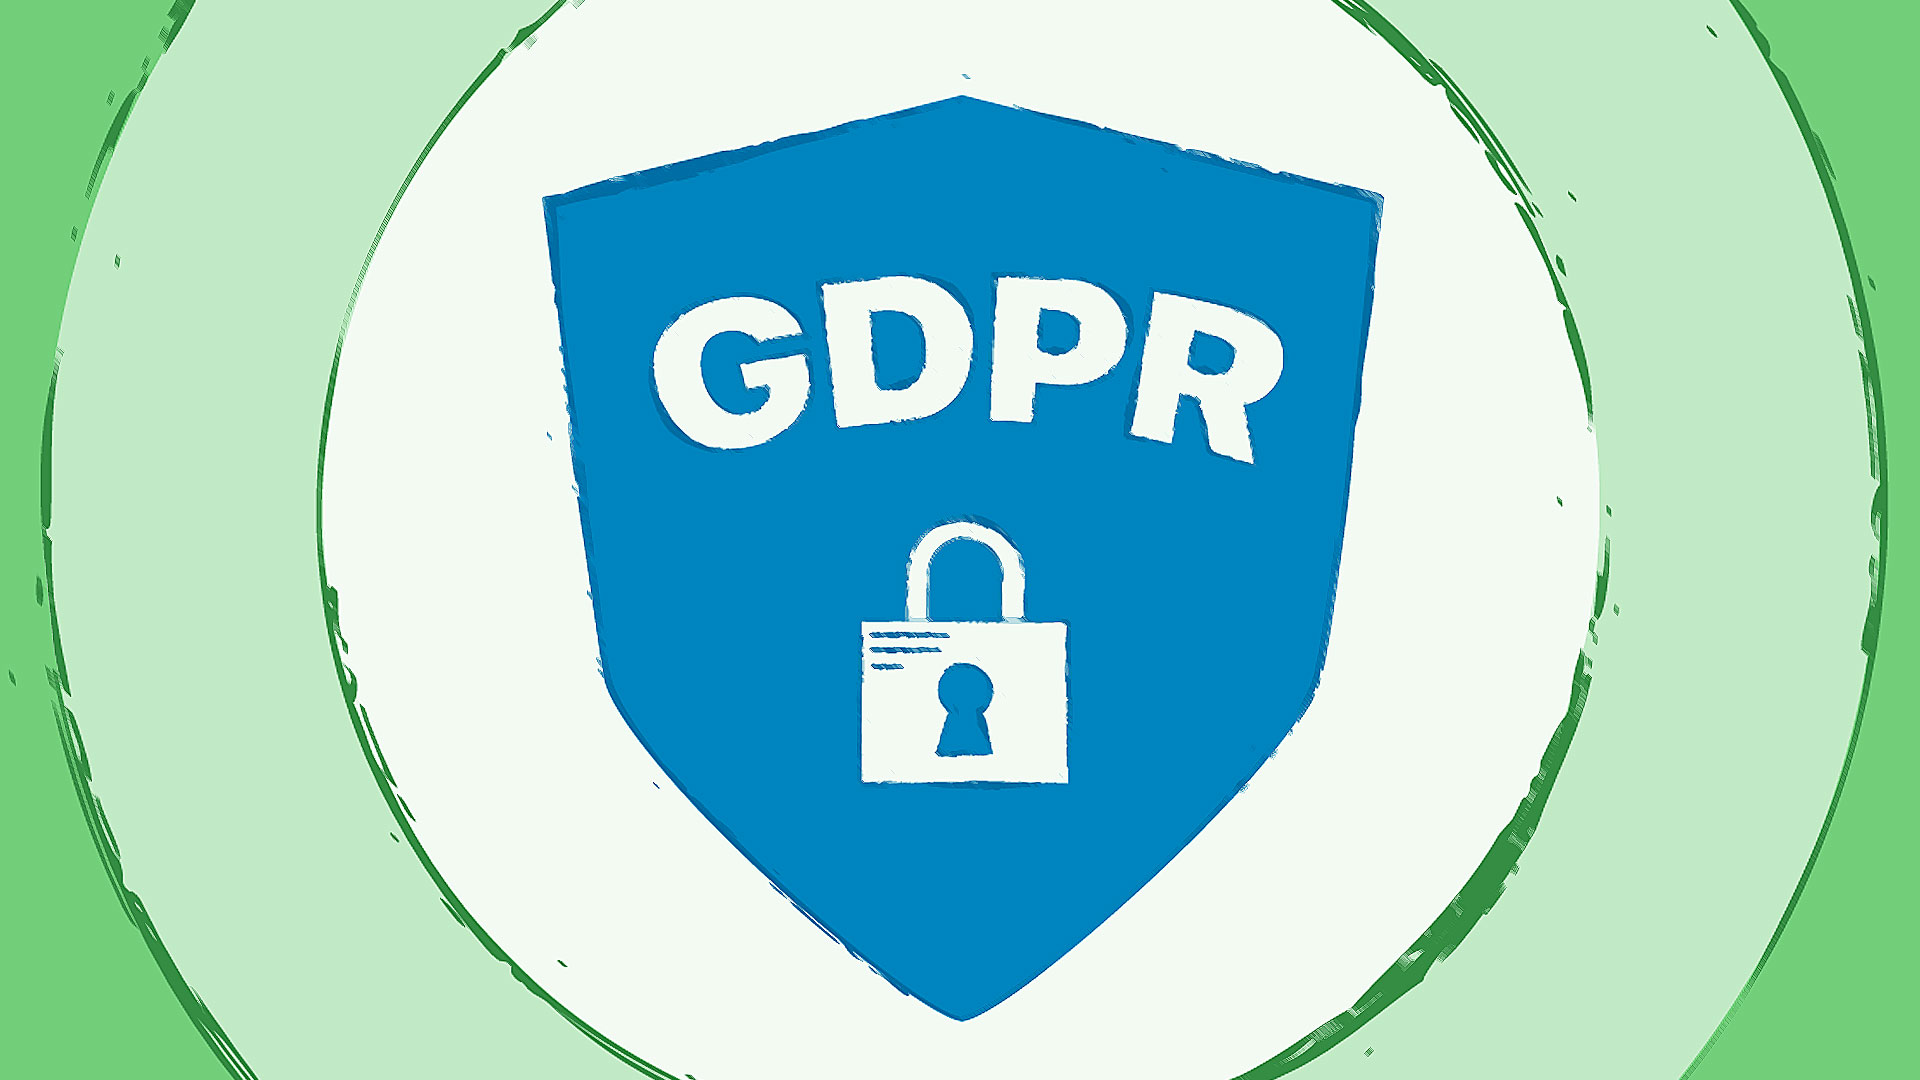 WordPress 4.9.6 Introduced Privacy Control for GDPR